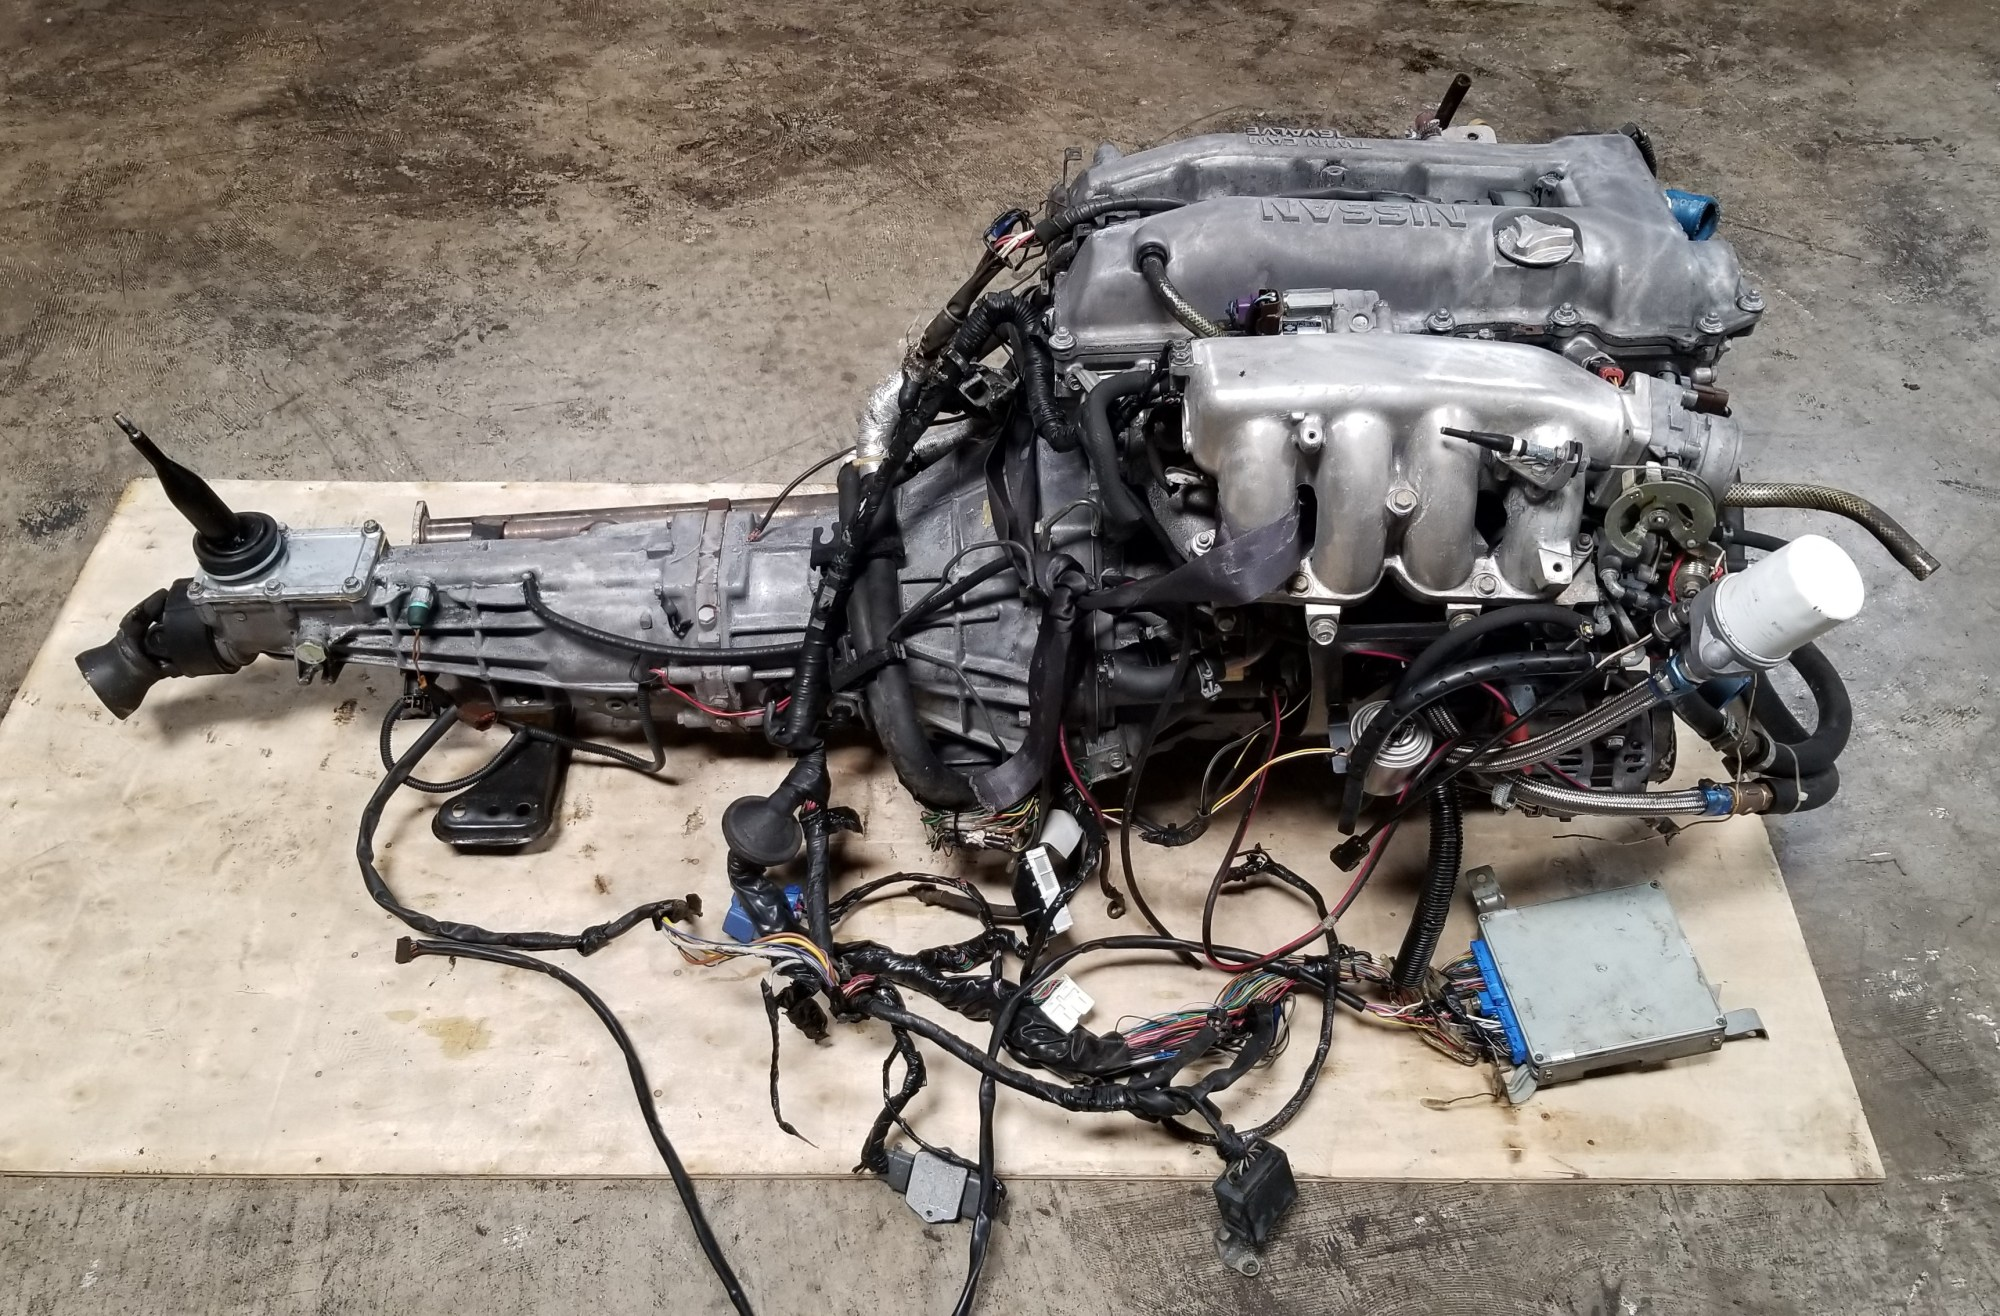 hight resolution of sr20det s14 notch top 2 0l turbo engine with 5 speed manual transmission nissan silvia 200sx sr20